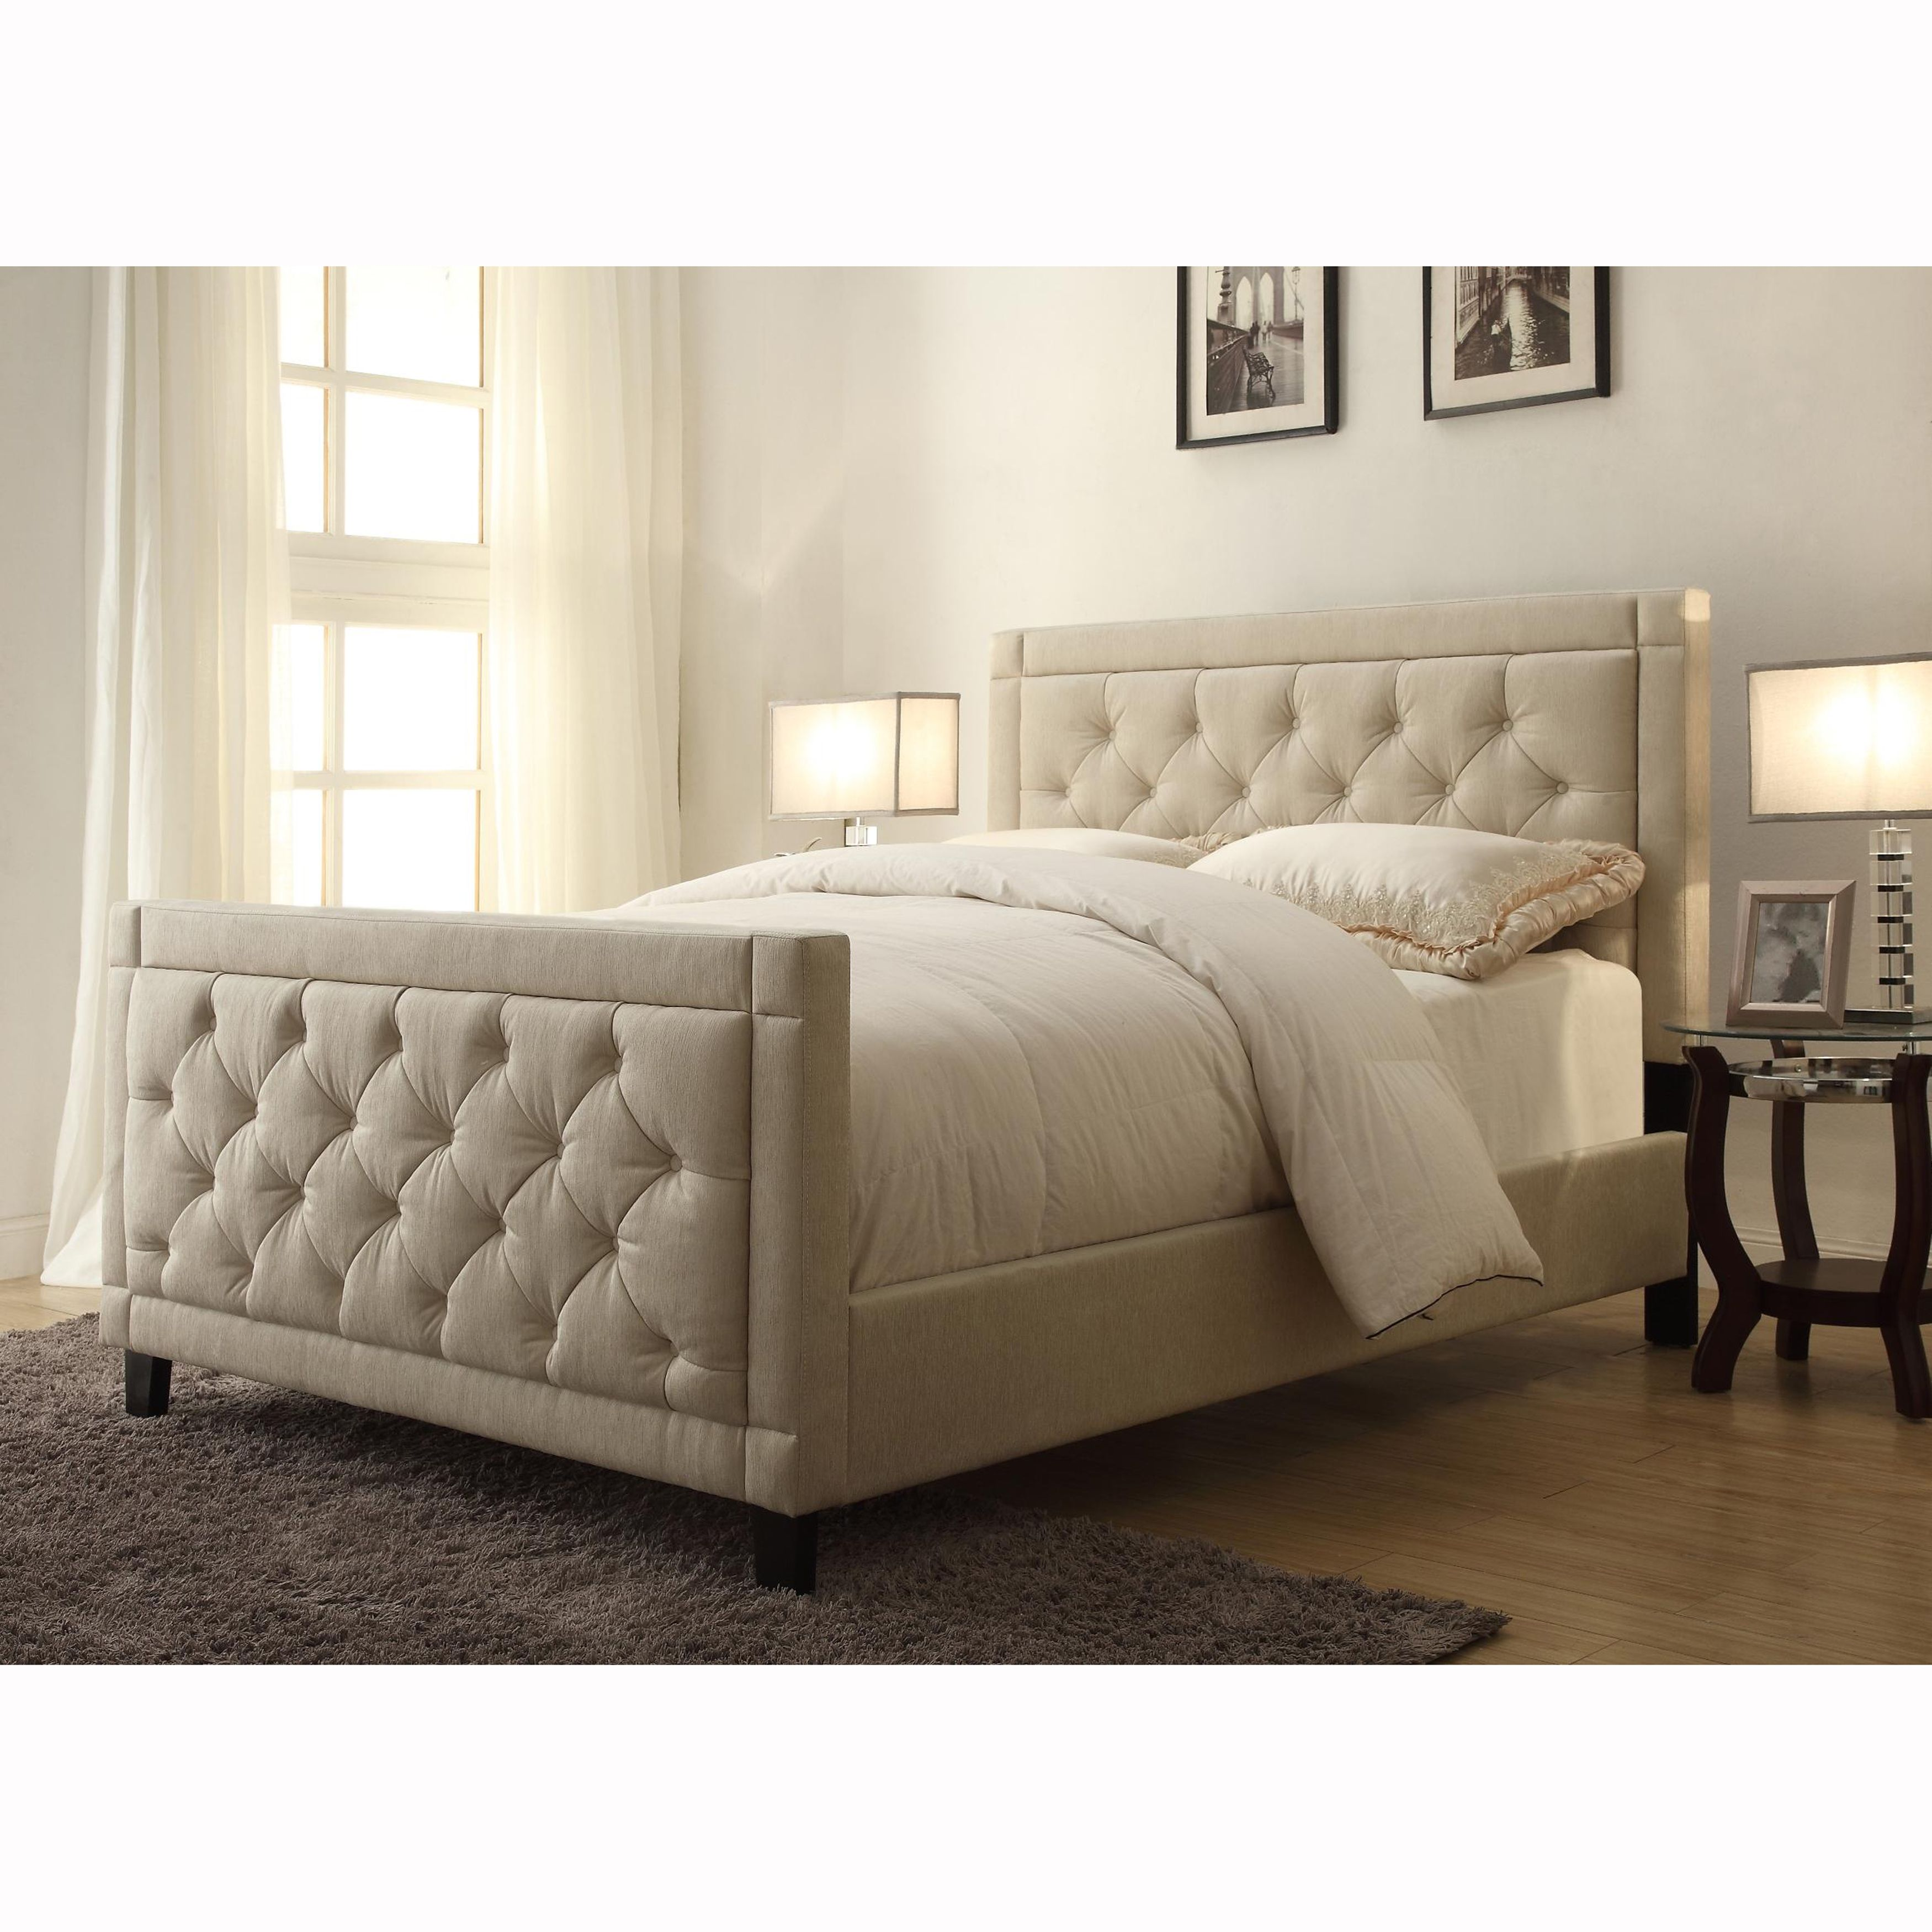 Natural Linen Queen Size Button Tufted Upholstered Bed Is